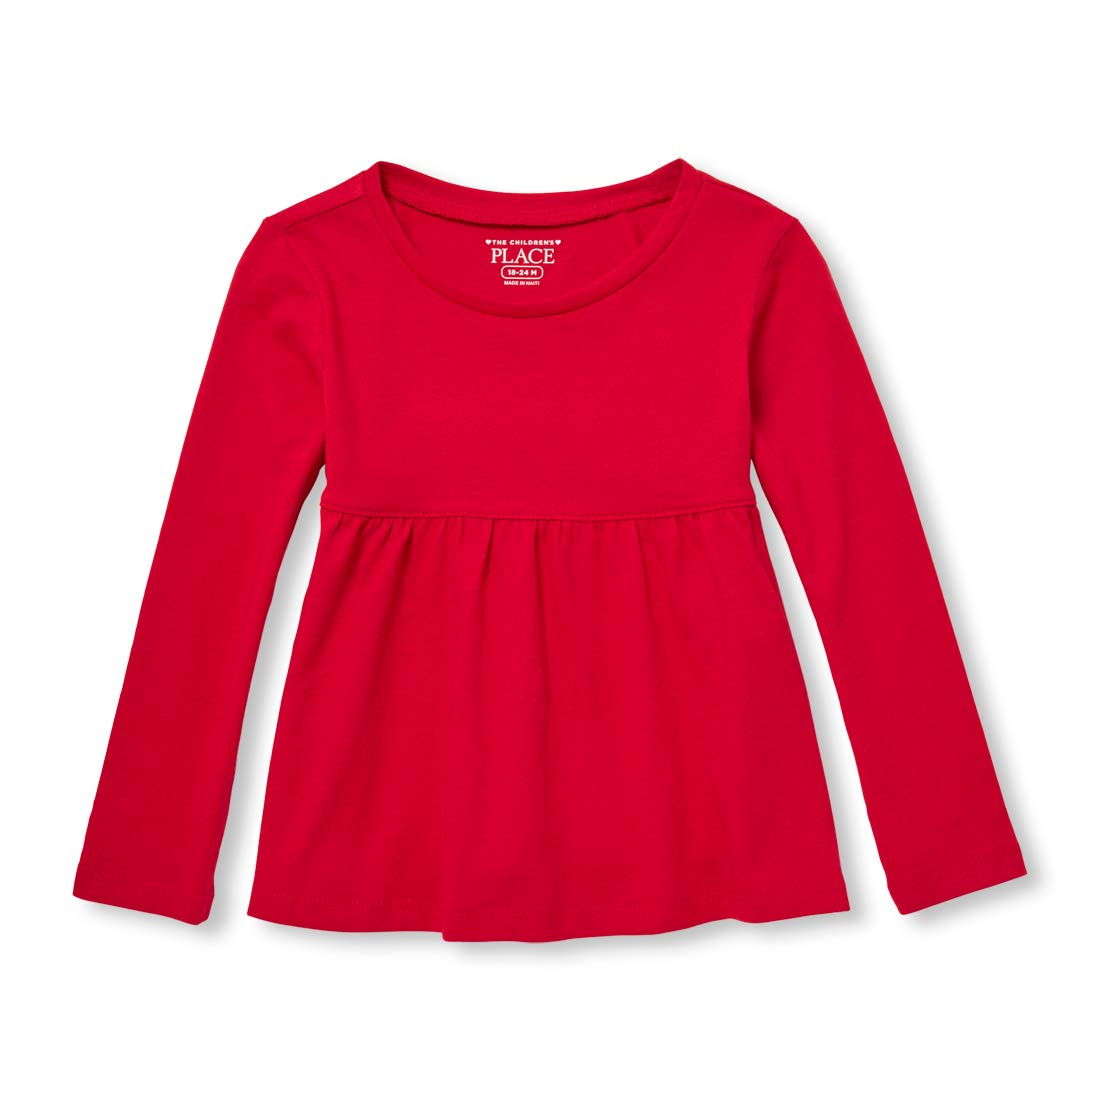 The Children's Place Baby Girls Long Sleeve Solid Top The Children's Place 2103366